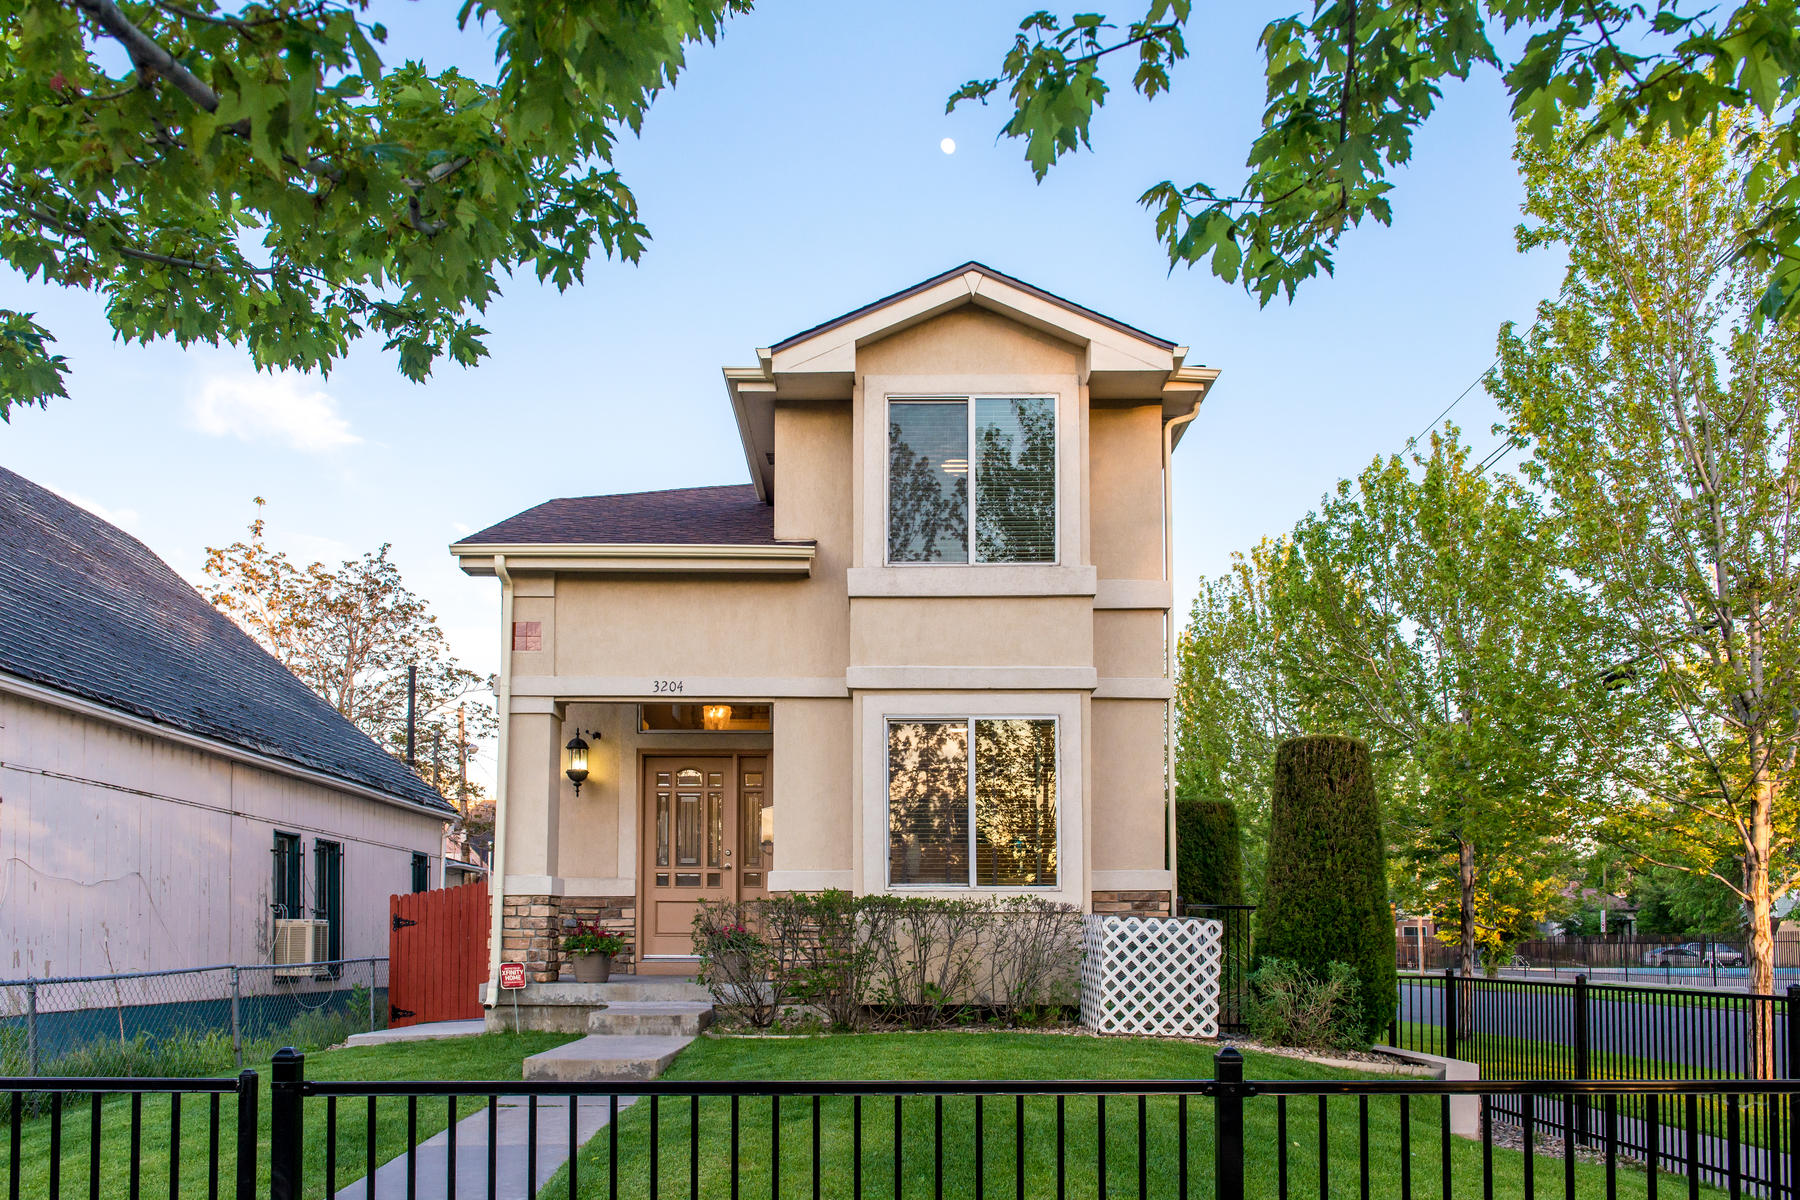 Condominium for Active at Charming Home in Curtis Park! 3204 Curtis Street Denver, Colorado 80205 United States